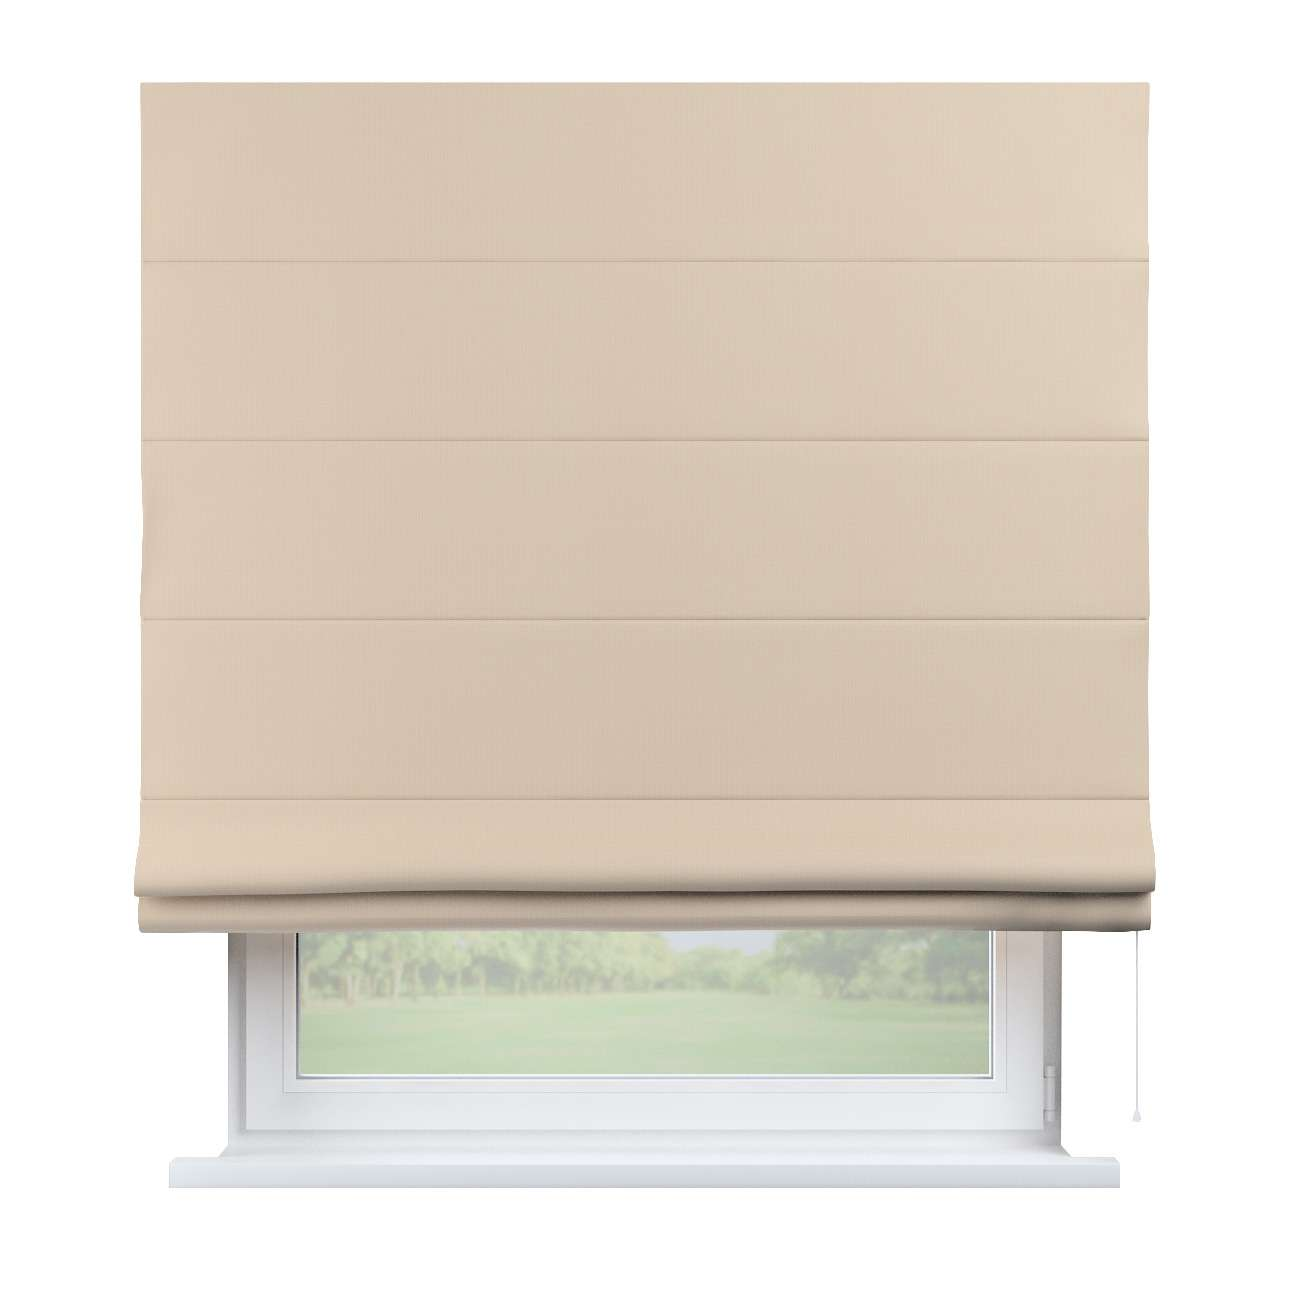 Blackout roman blind in collection Blackout, fabric: 269-66